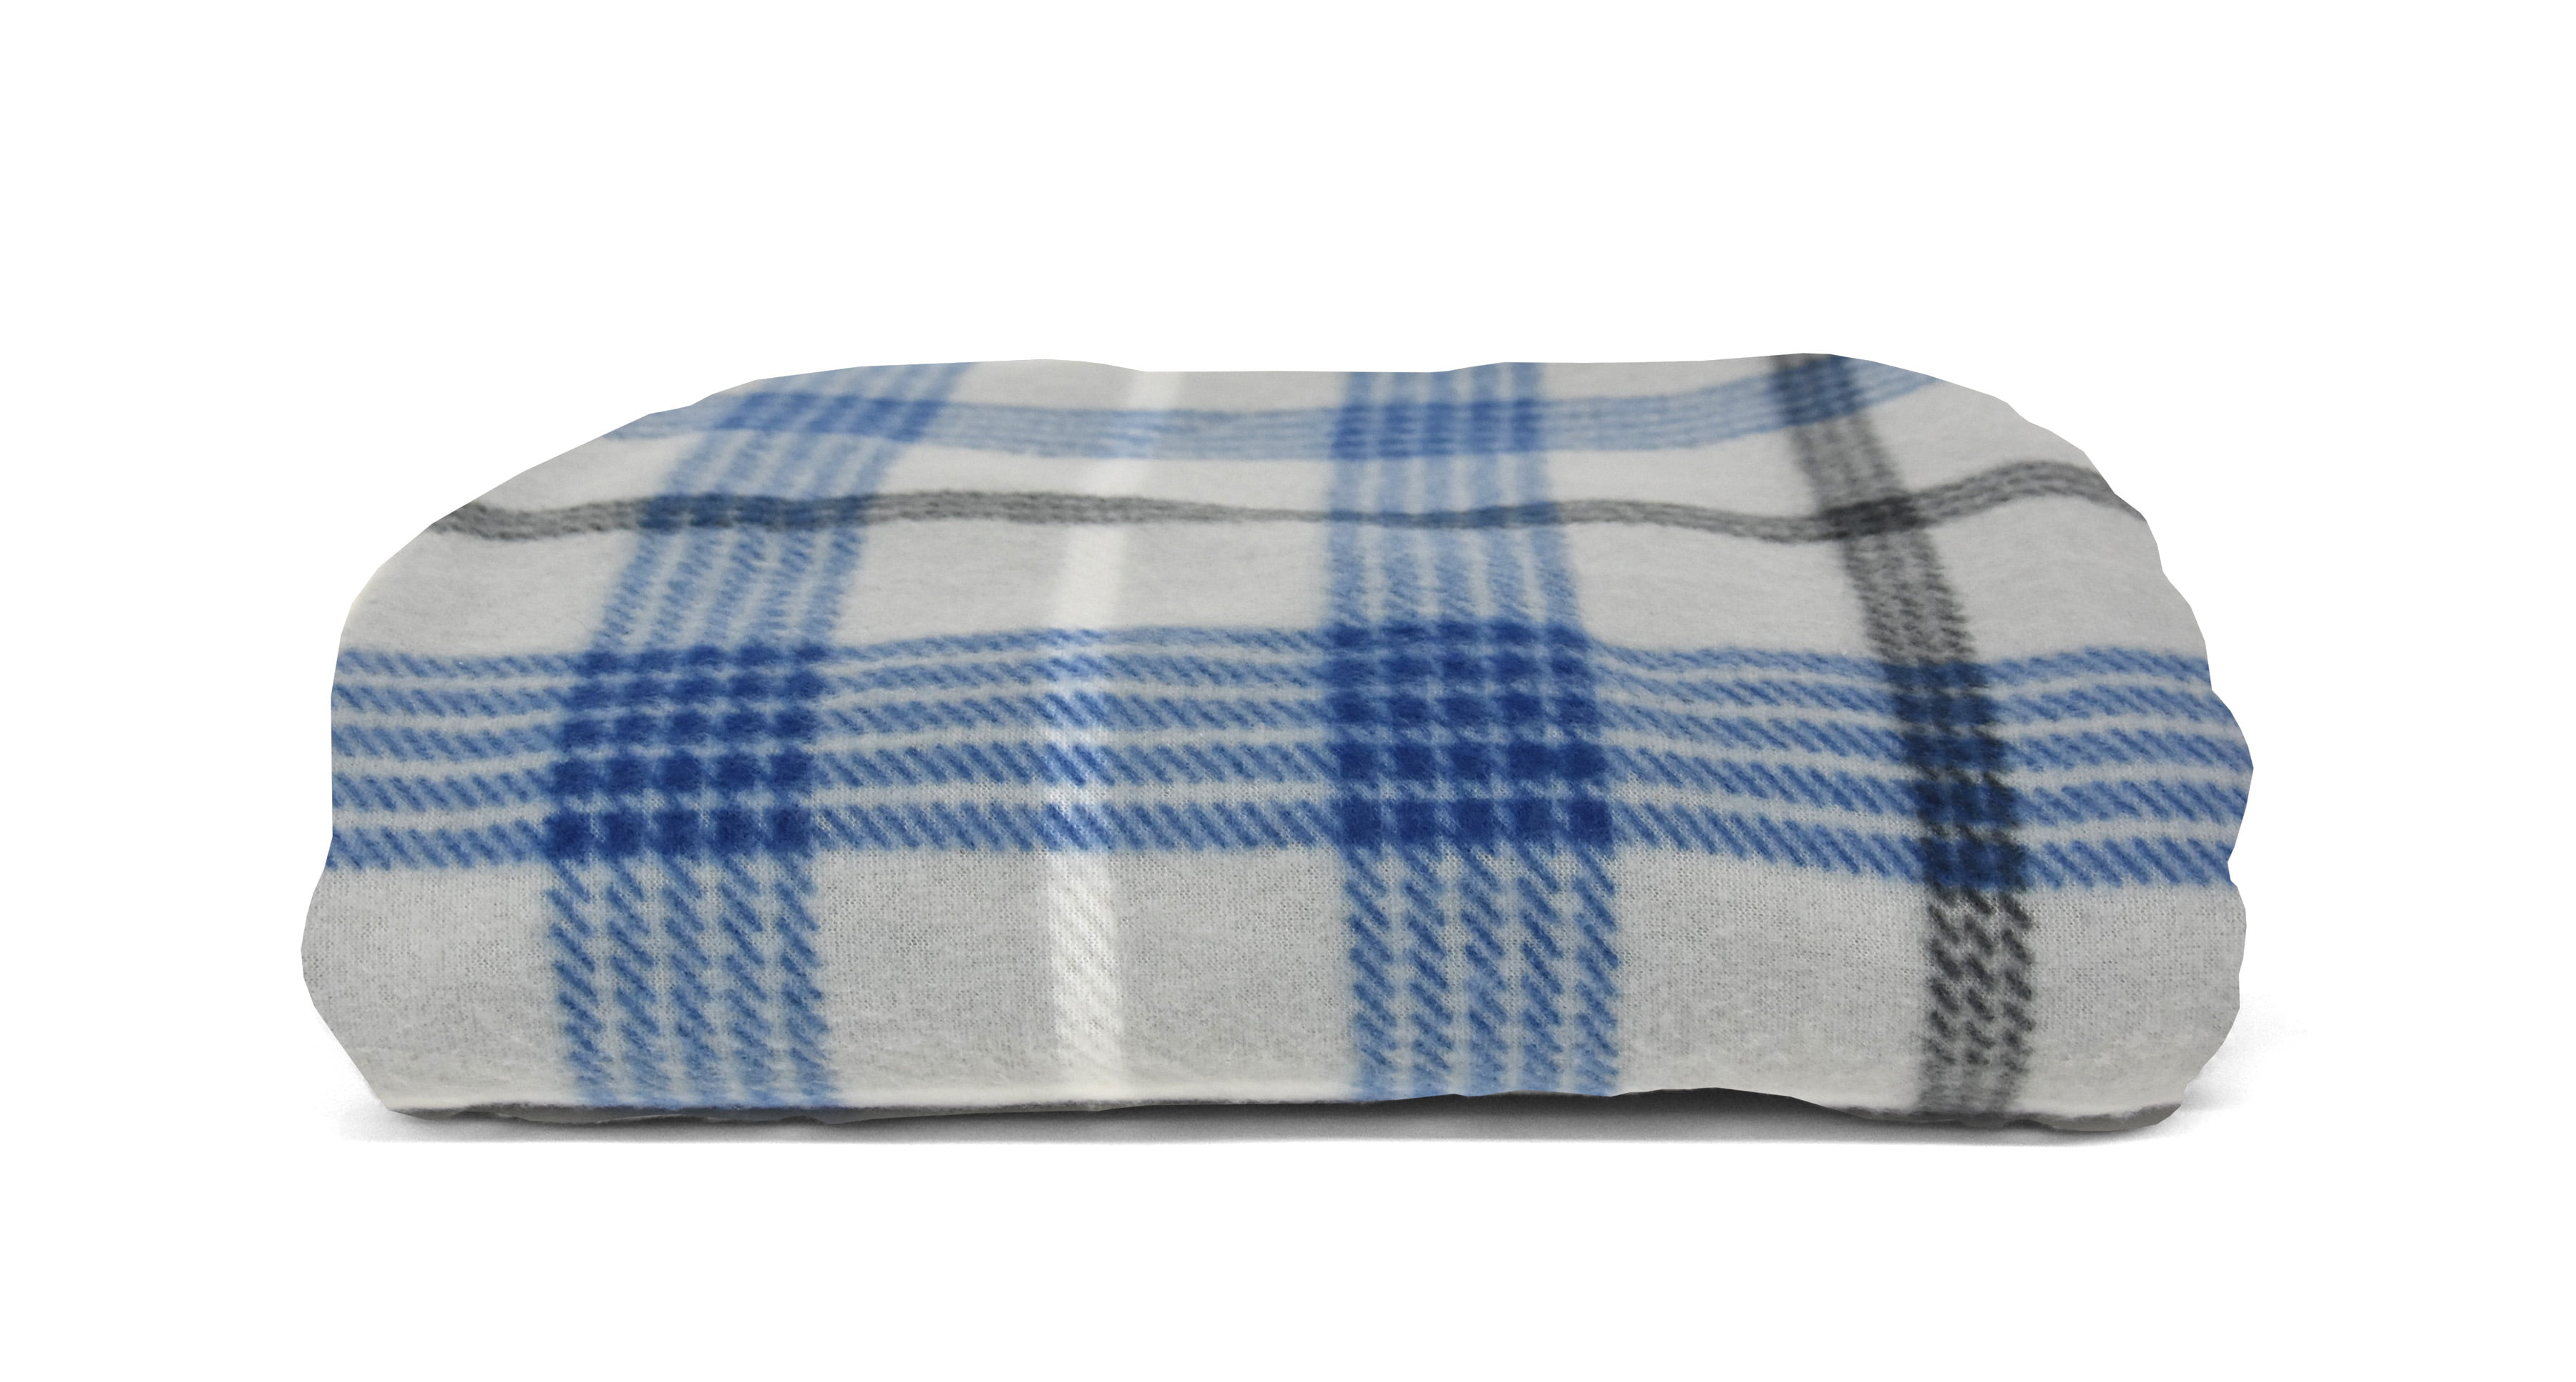 Mainstays Fleece Basic Plush Throw Blanket, Available in Multiple Prints - Walmart.com